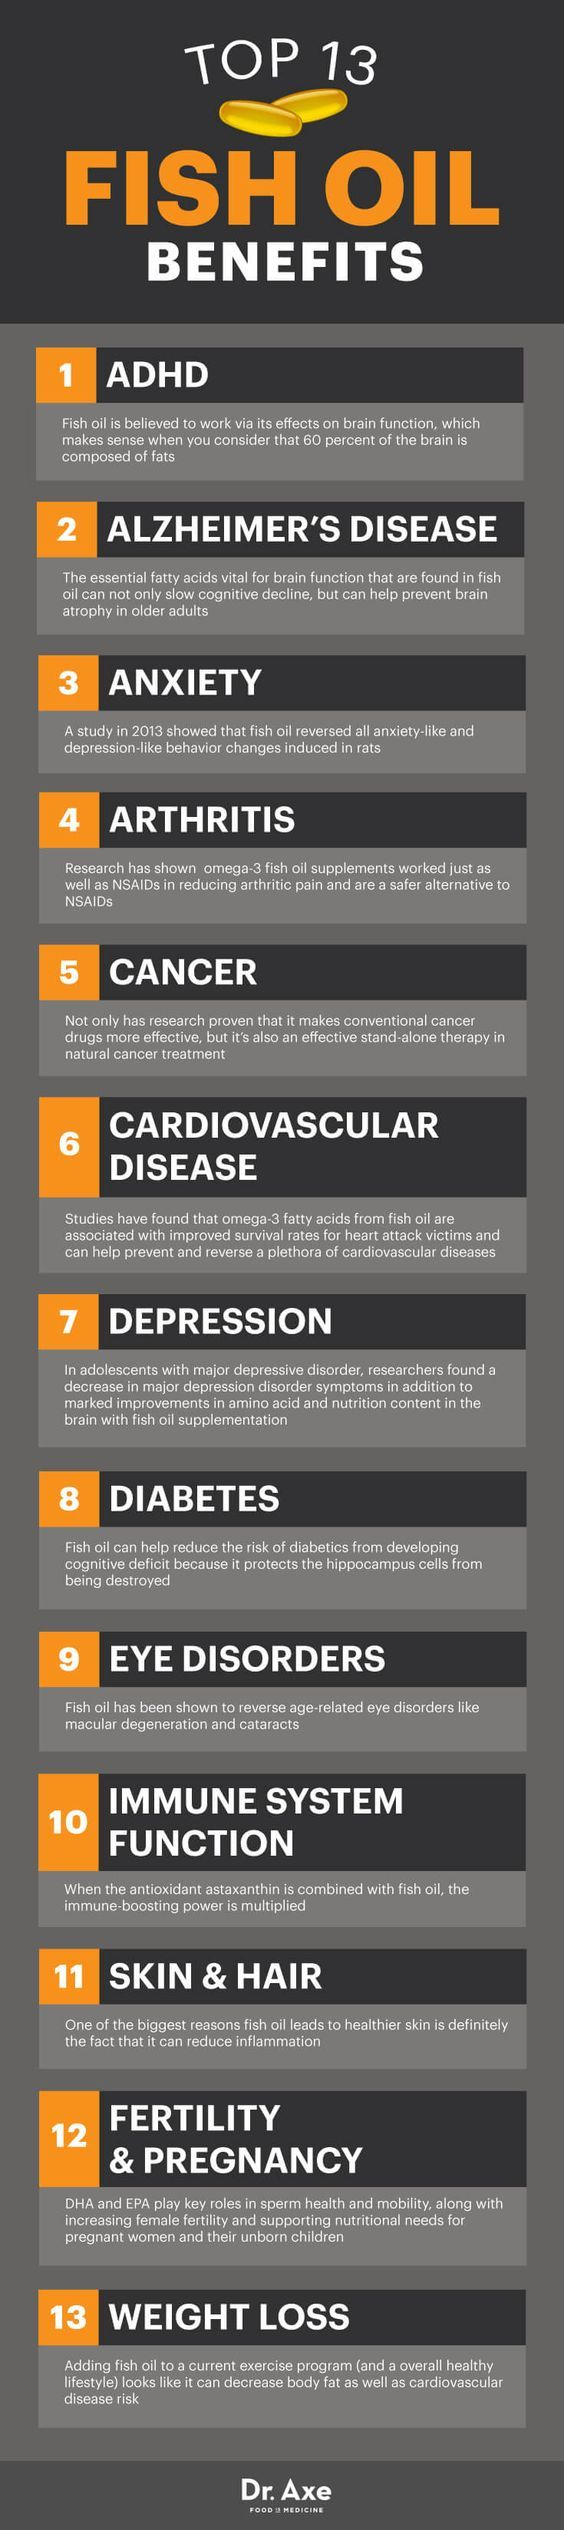 25 best ideas about fish oil benefits on pinterest fish for What are the benefits of taking fish oil